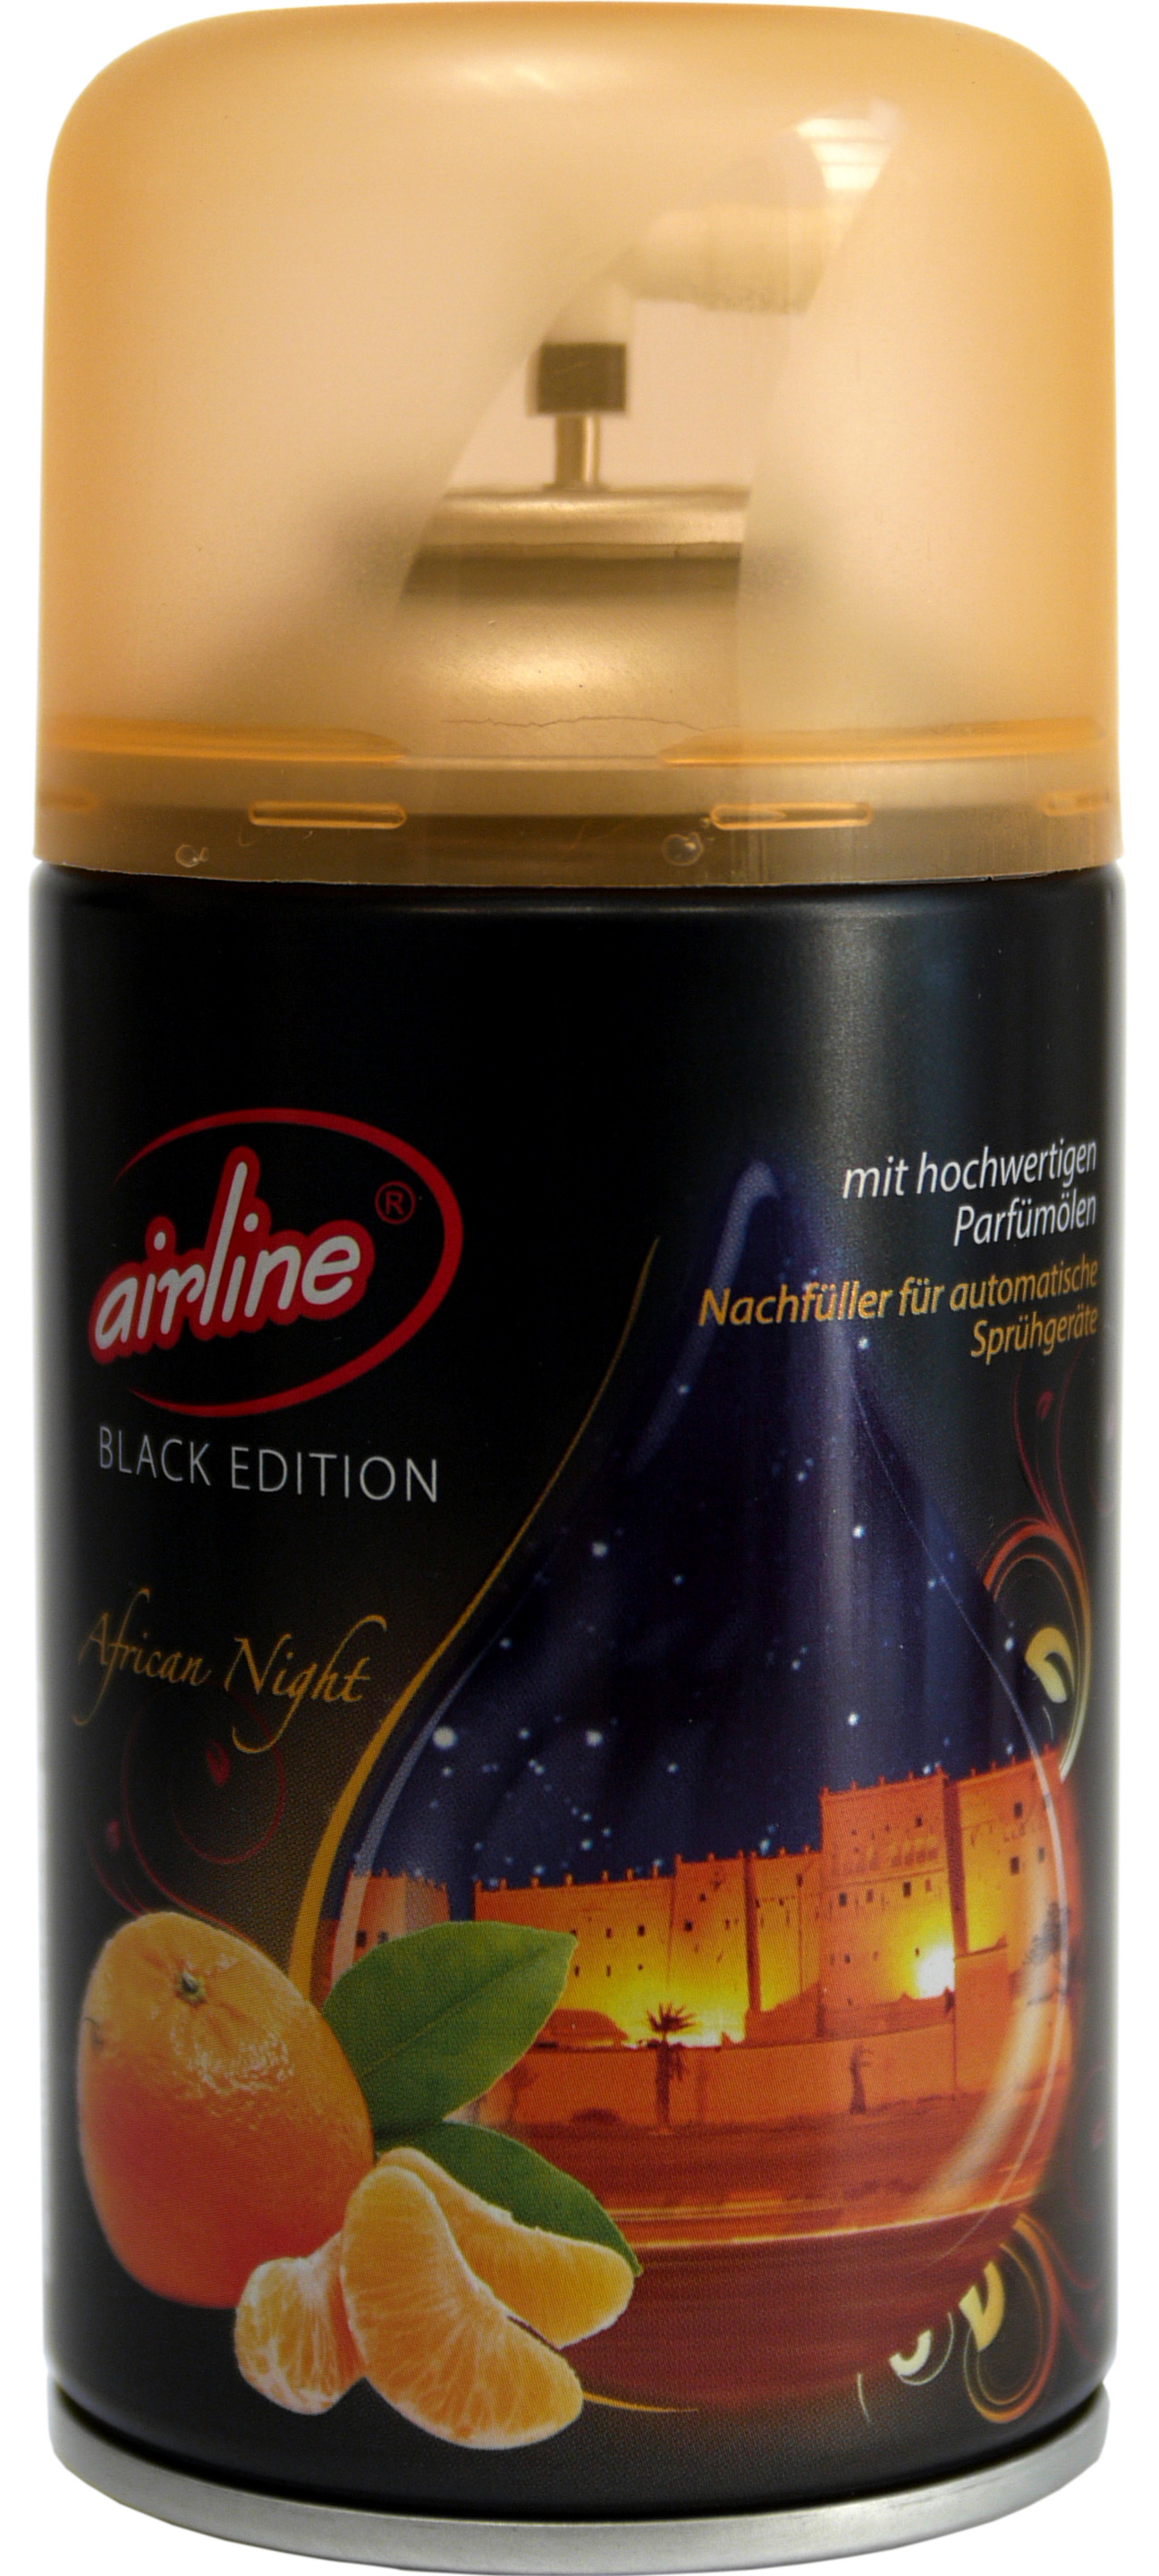 00536 - airline Black Edition African Night Nachfüllkartusche 250 ml